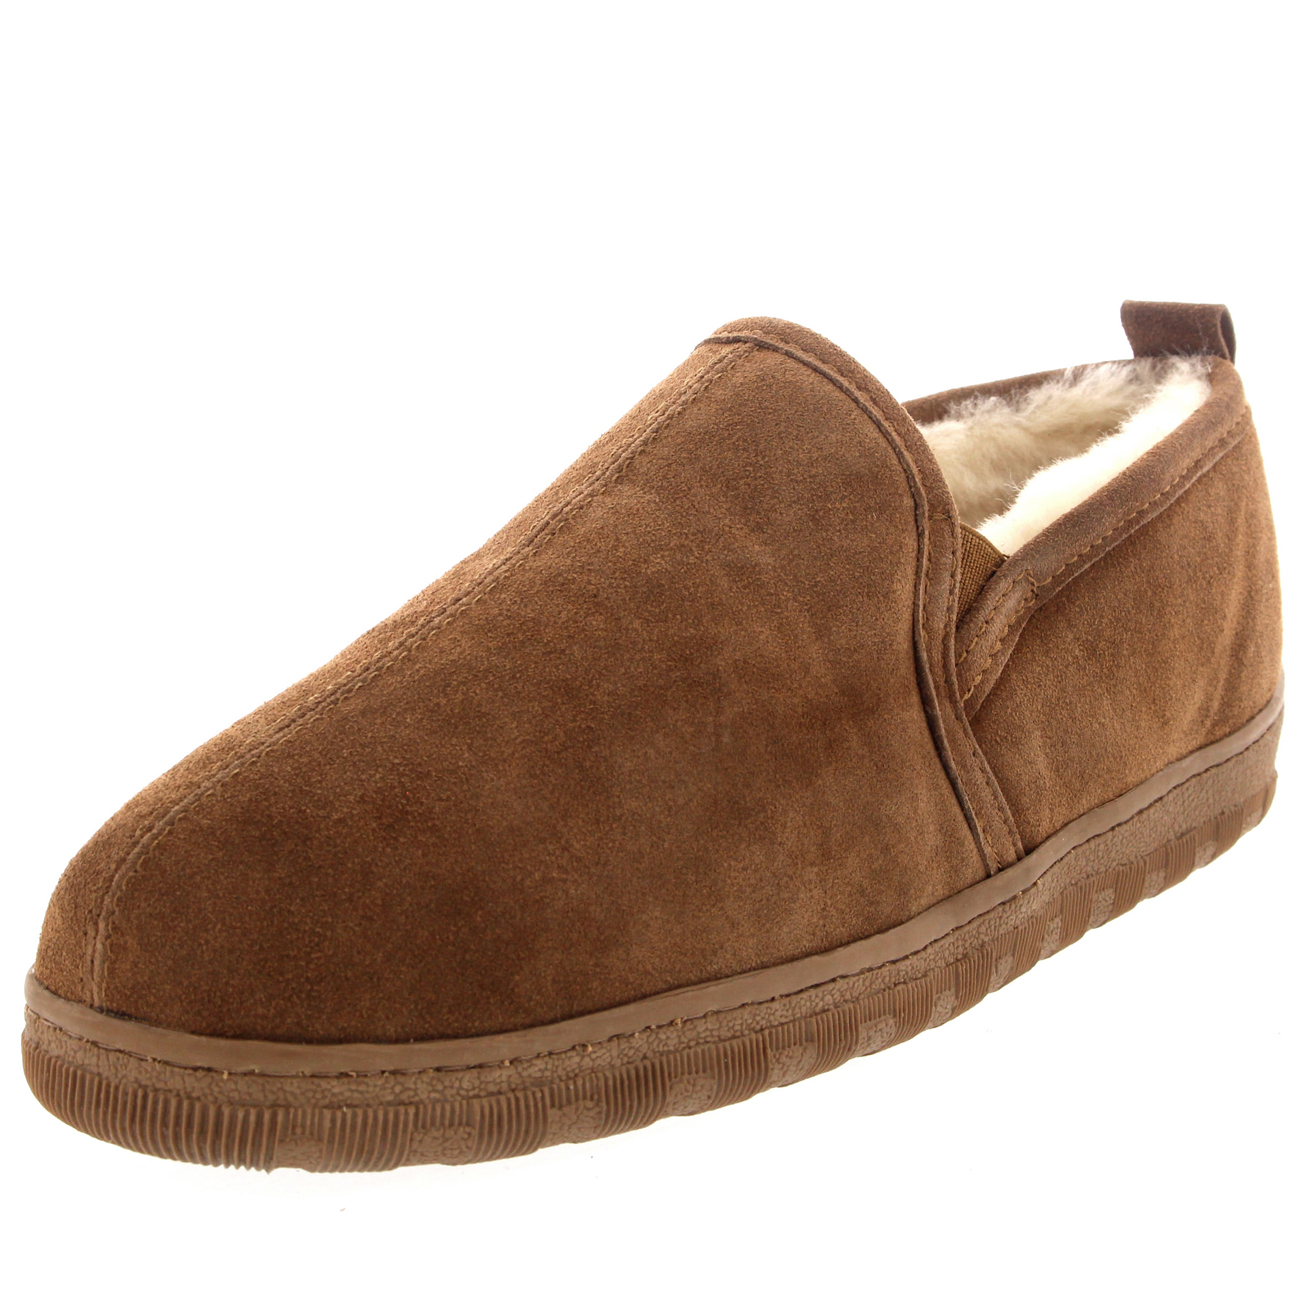 Slippers Australia Mens Real Suede Loafer Australian Sheepskin Warm Fur